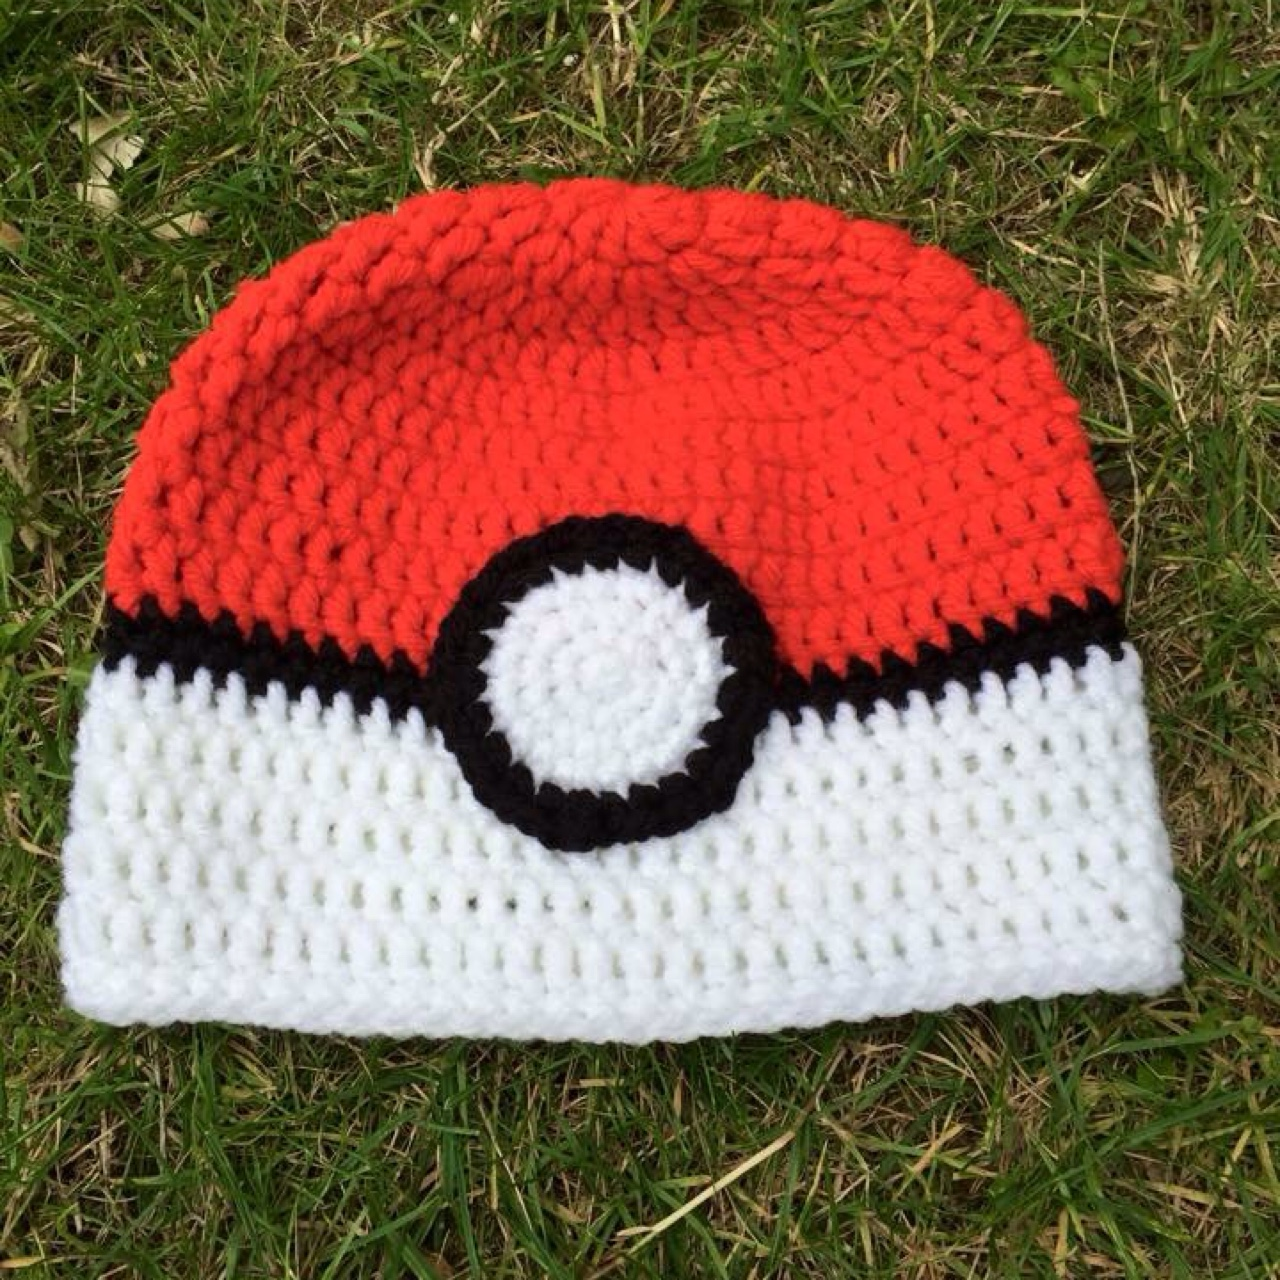 crochet pikachu hat ab827d0feb the latest - gazipurkontho.com | 1280x1280